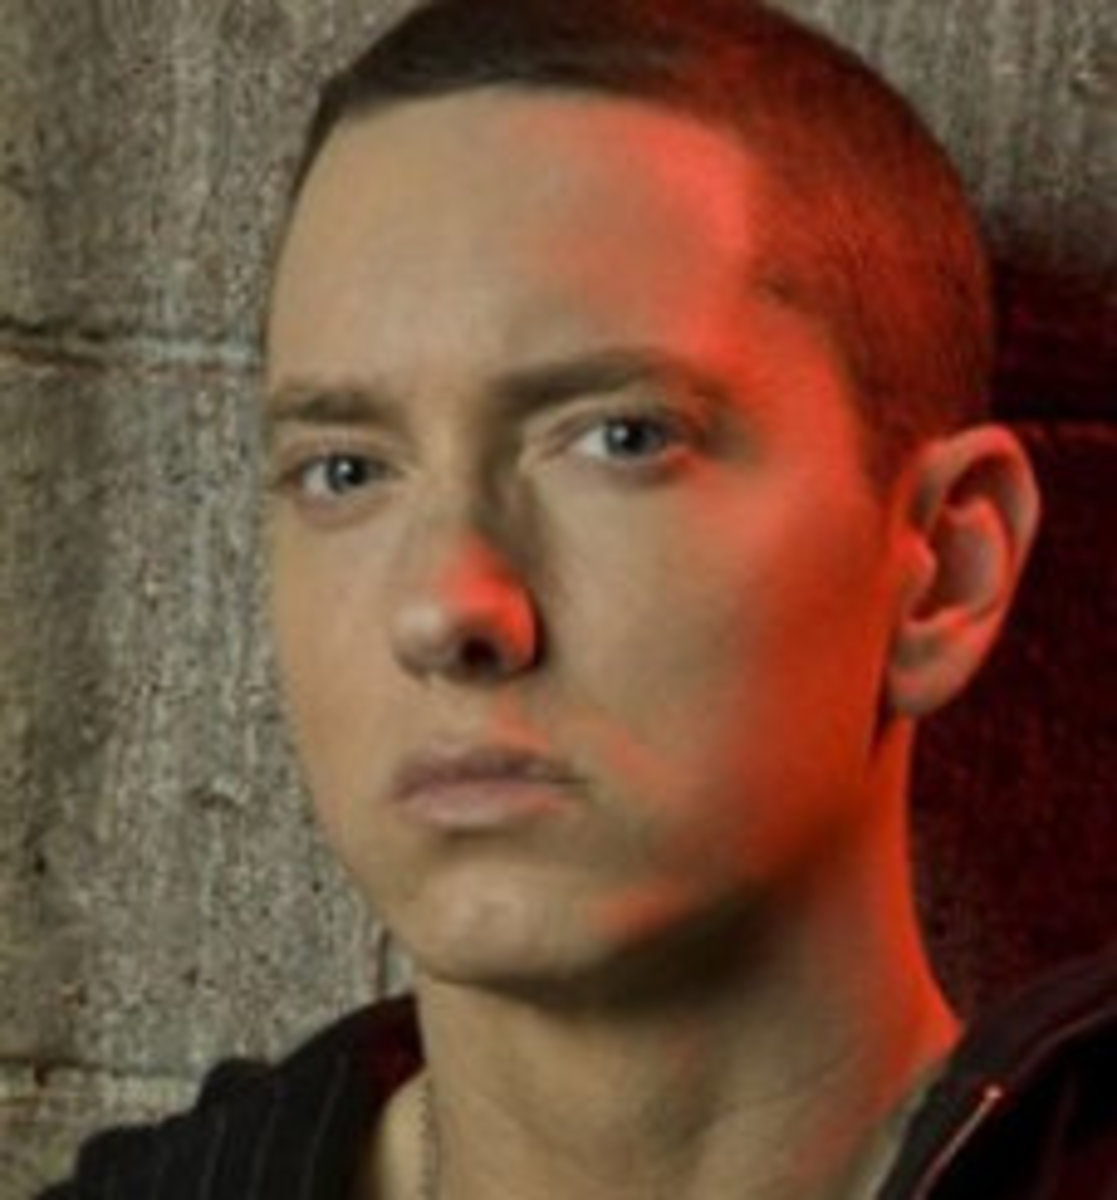 The real meaning behind Eminem's Superman lyrics